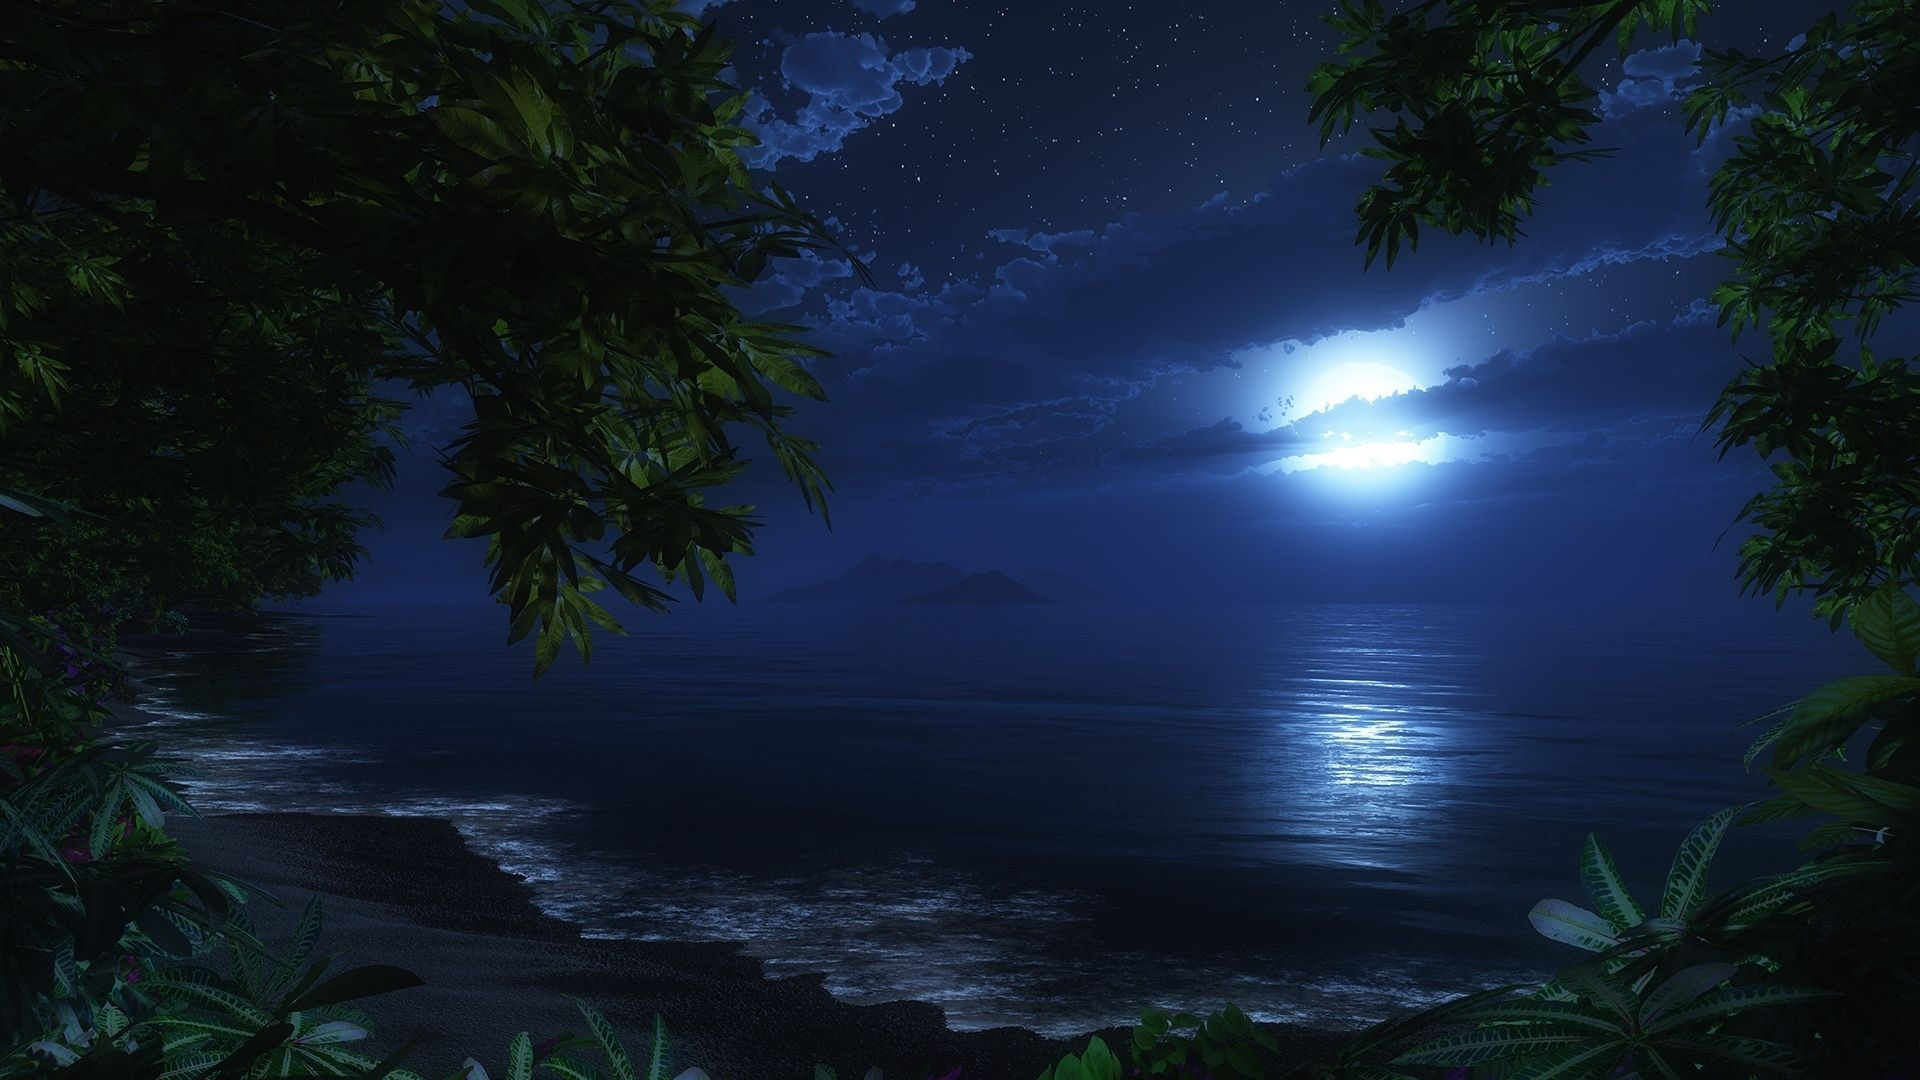 Image for Tropical Beaches At Night Galaxy Wallpaper ...